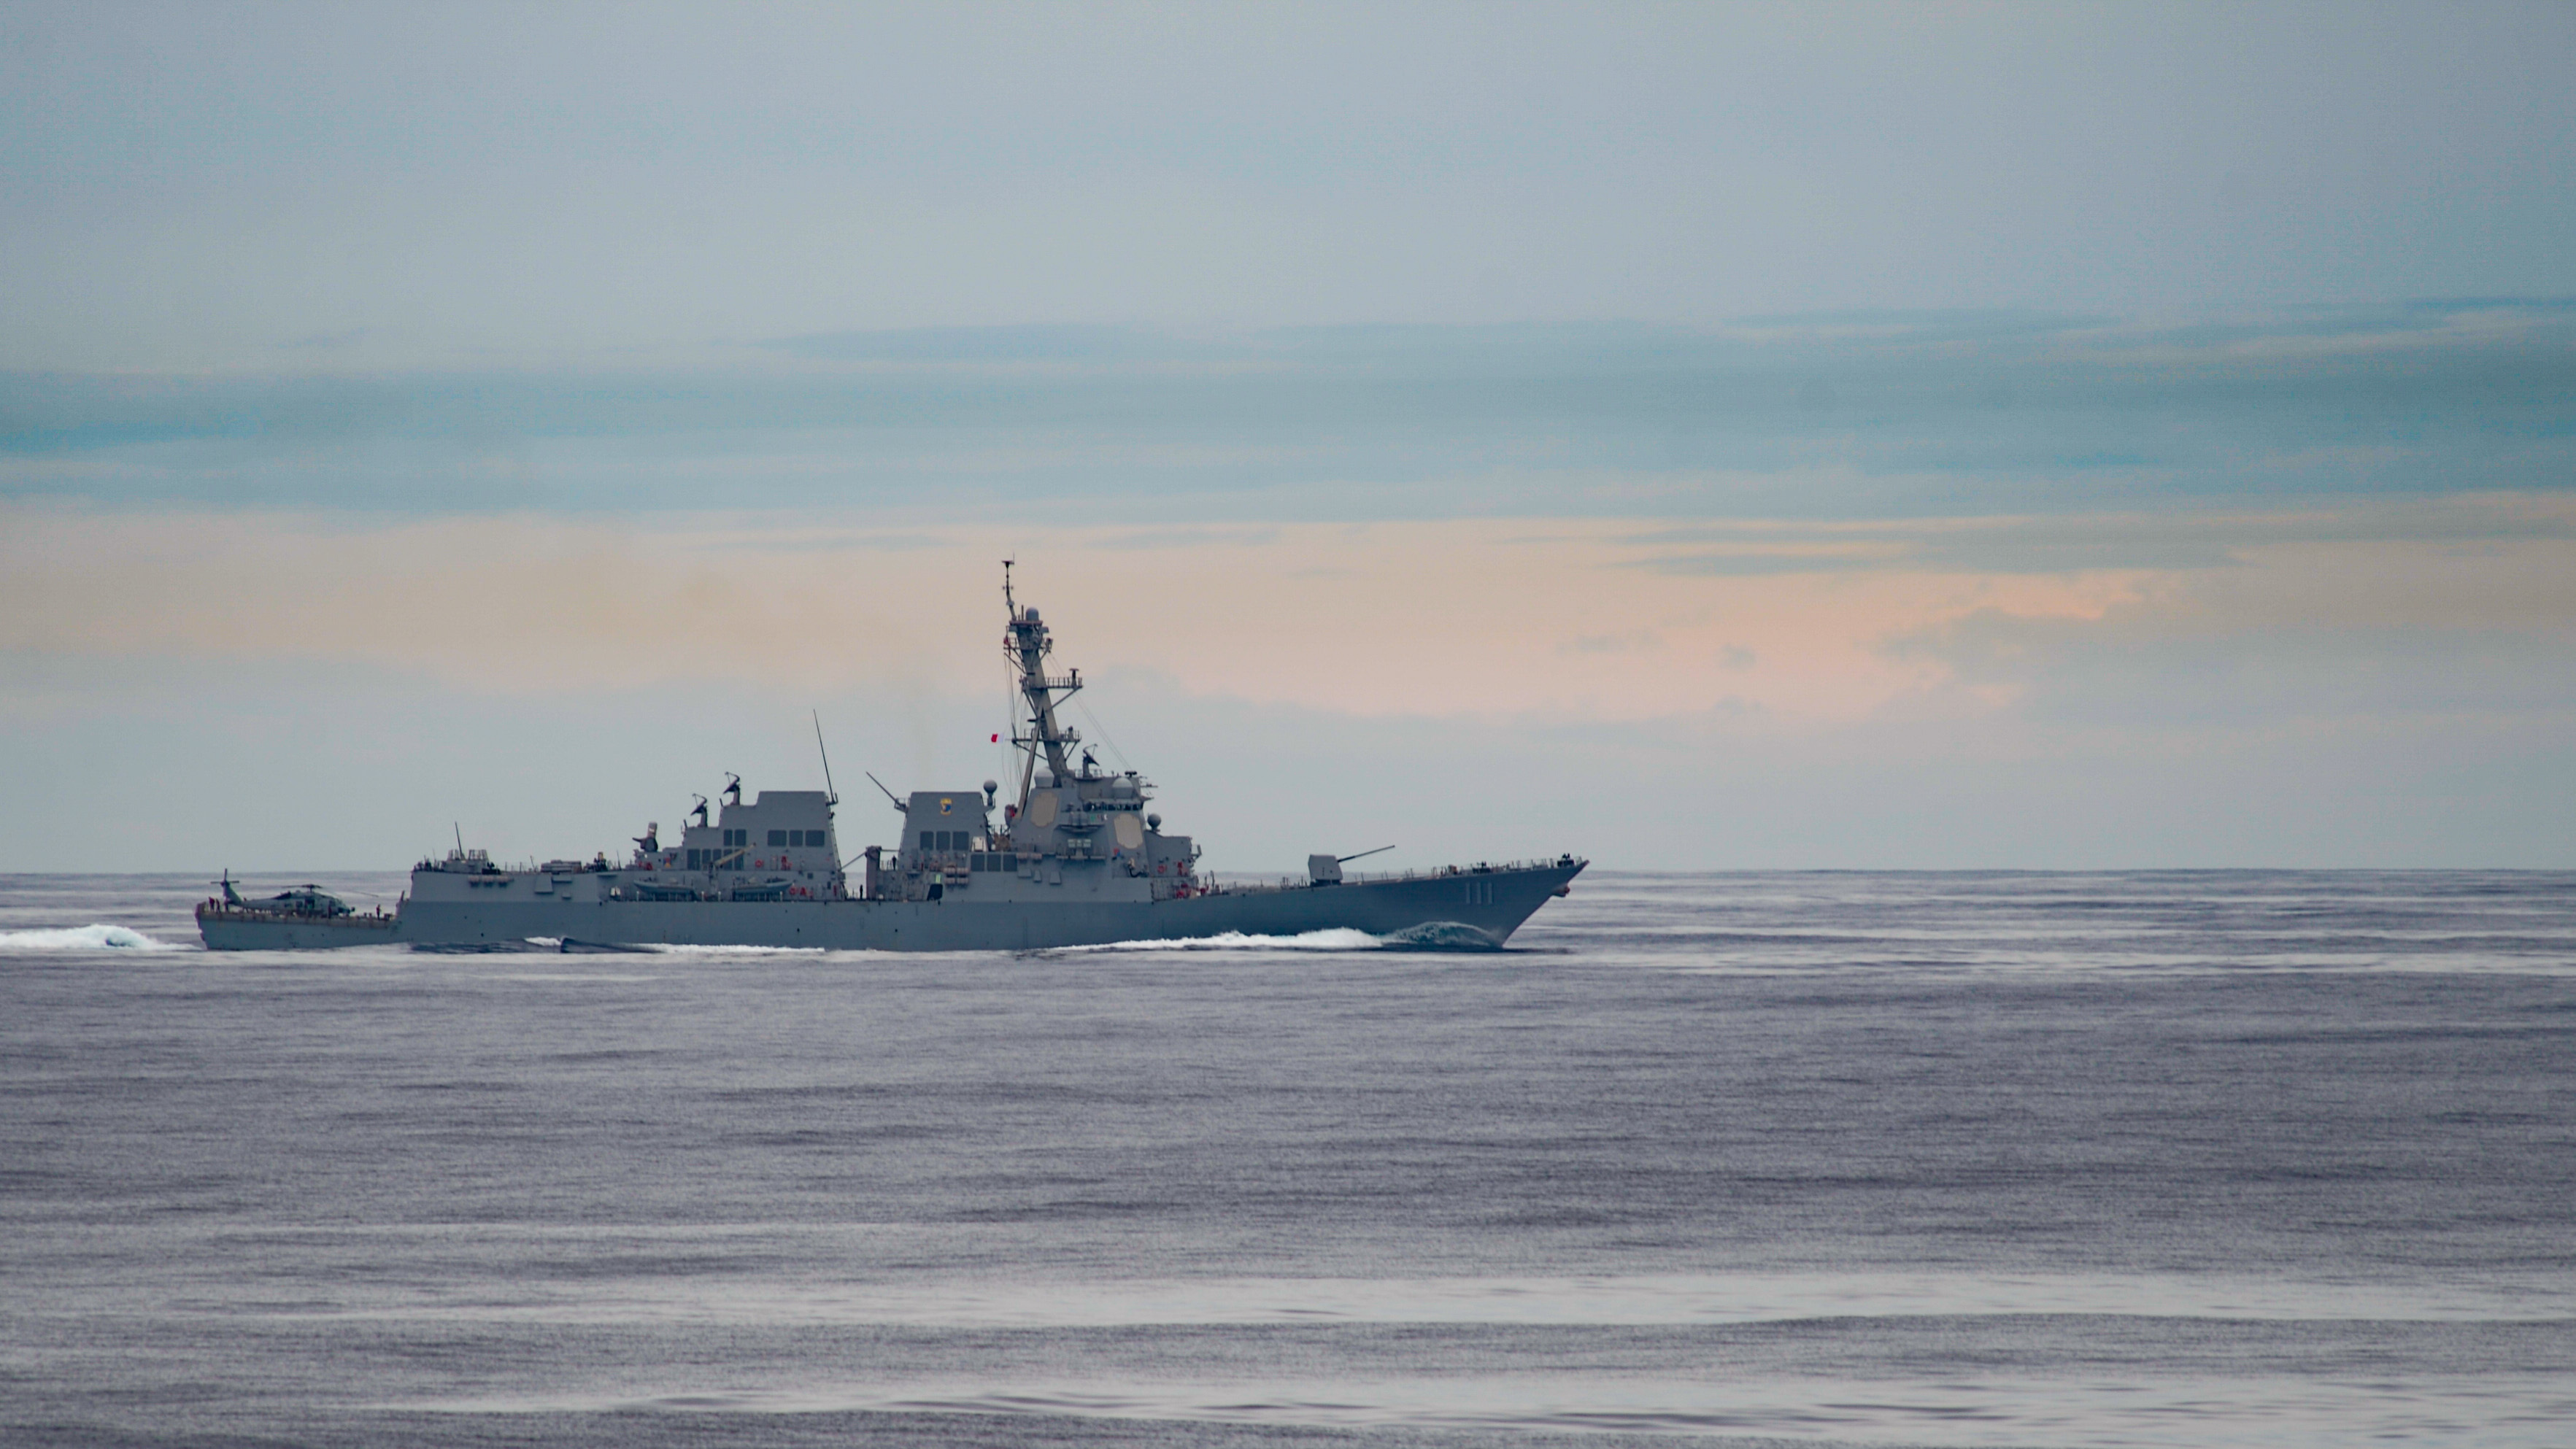 The destroyer Spruance steaming in the Pacific Ocean. The acting Navy Secretary has doubled down on the 355-ship goal set by the Navy's 2016 force structure assessment. (U.S. Navy photo by MC3 Sean Lynch)